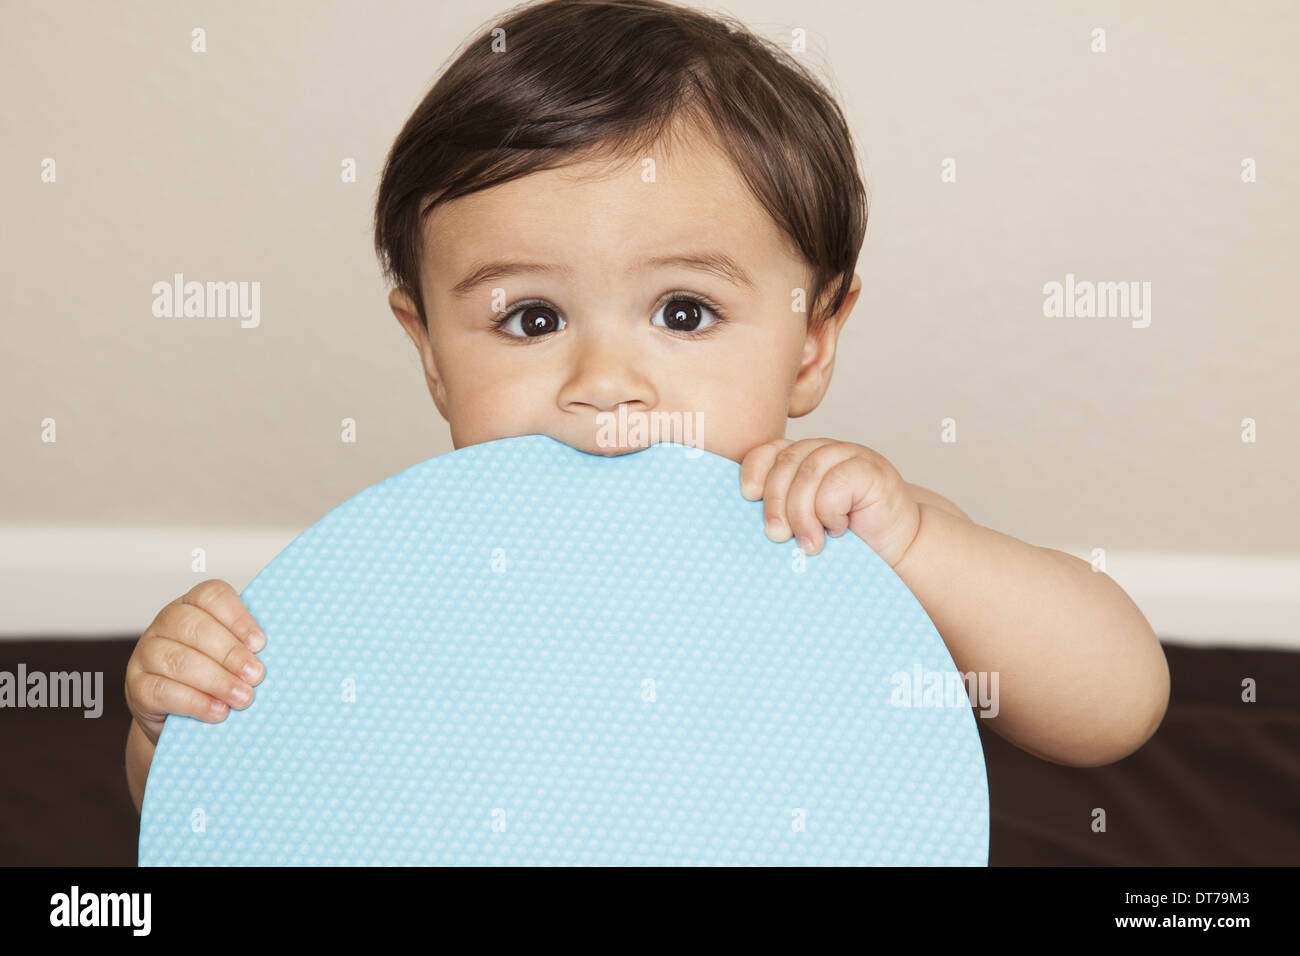 A young 8 month old baby boy wearing cloth diapers, holding a large blue disc and chewing the edge. - Stock Image